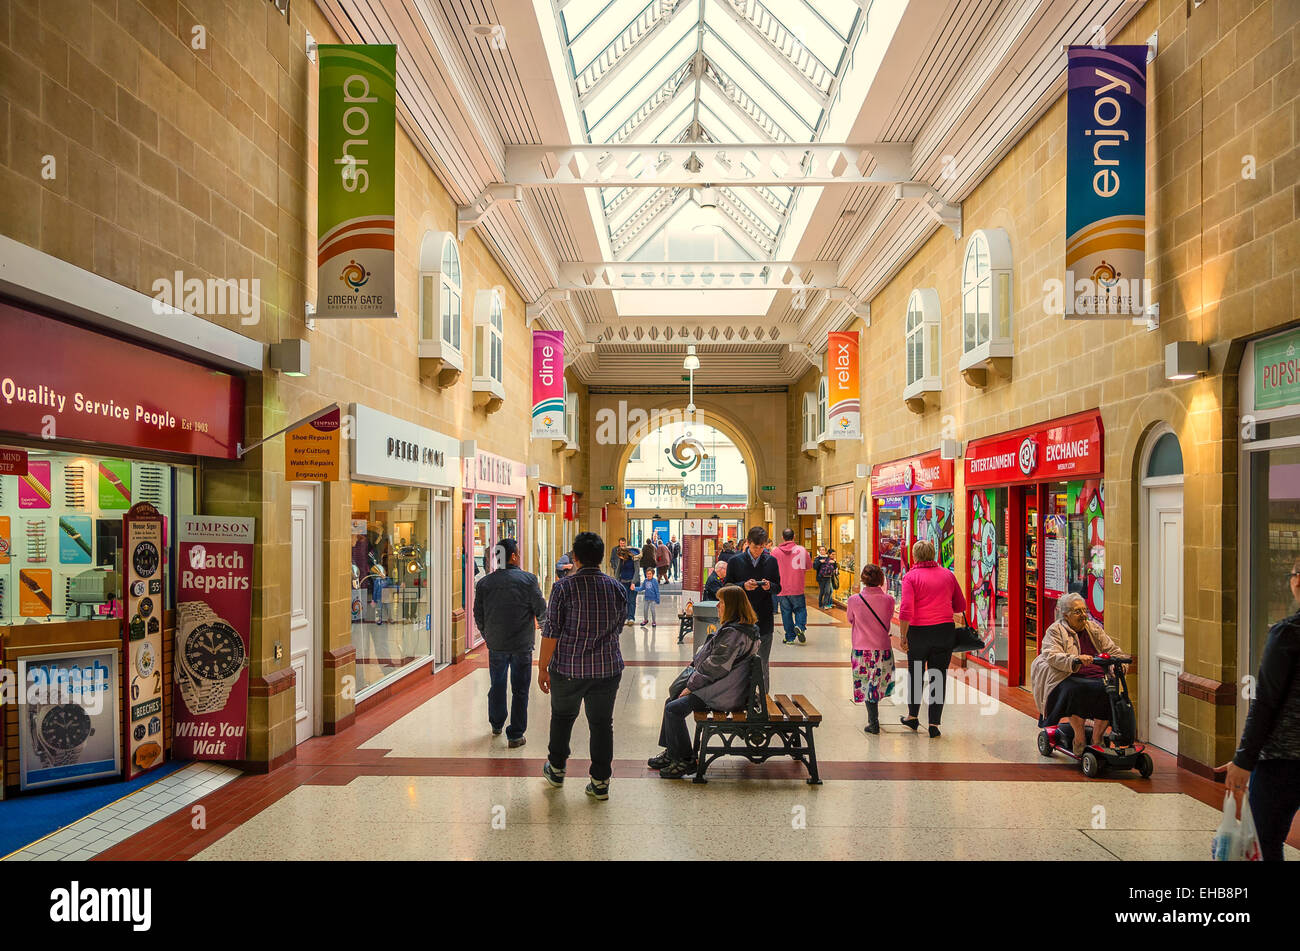 Emery Gate Shopping Centre in Chippenham town Wiltshire UK - Stock Image